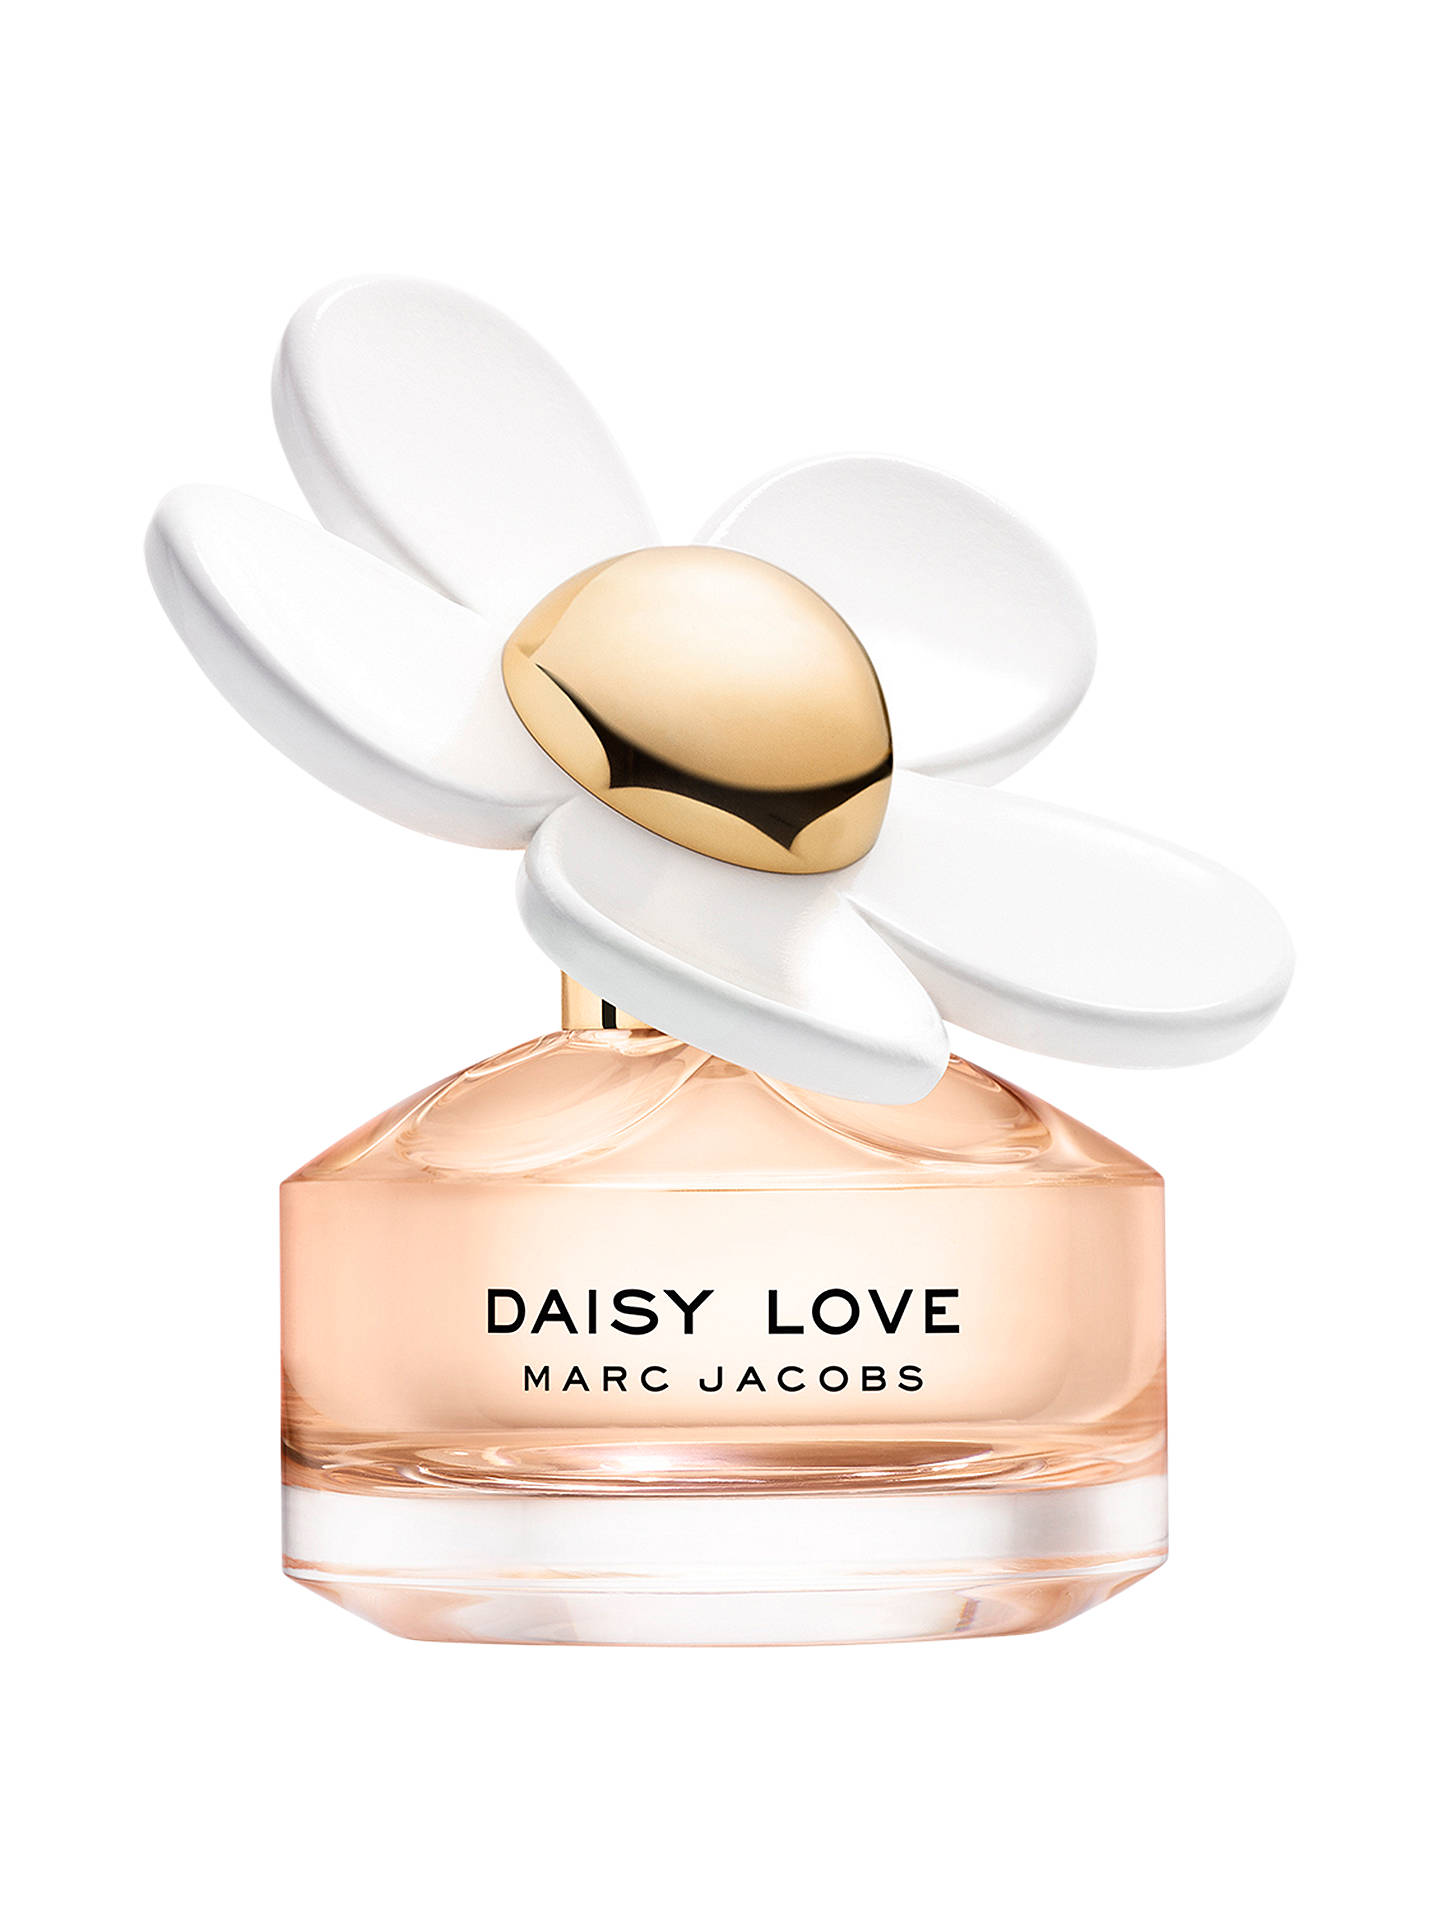 BuyMarc Jacobs Daisy Love Eau de Toilette, 50ml Online at johnlewis.com